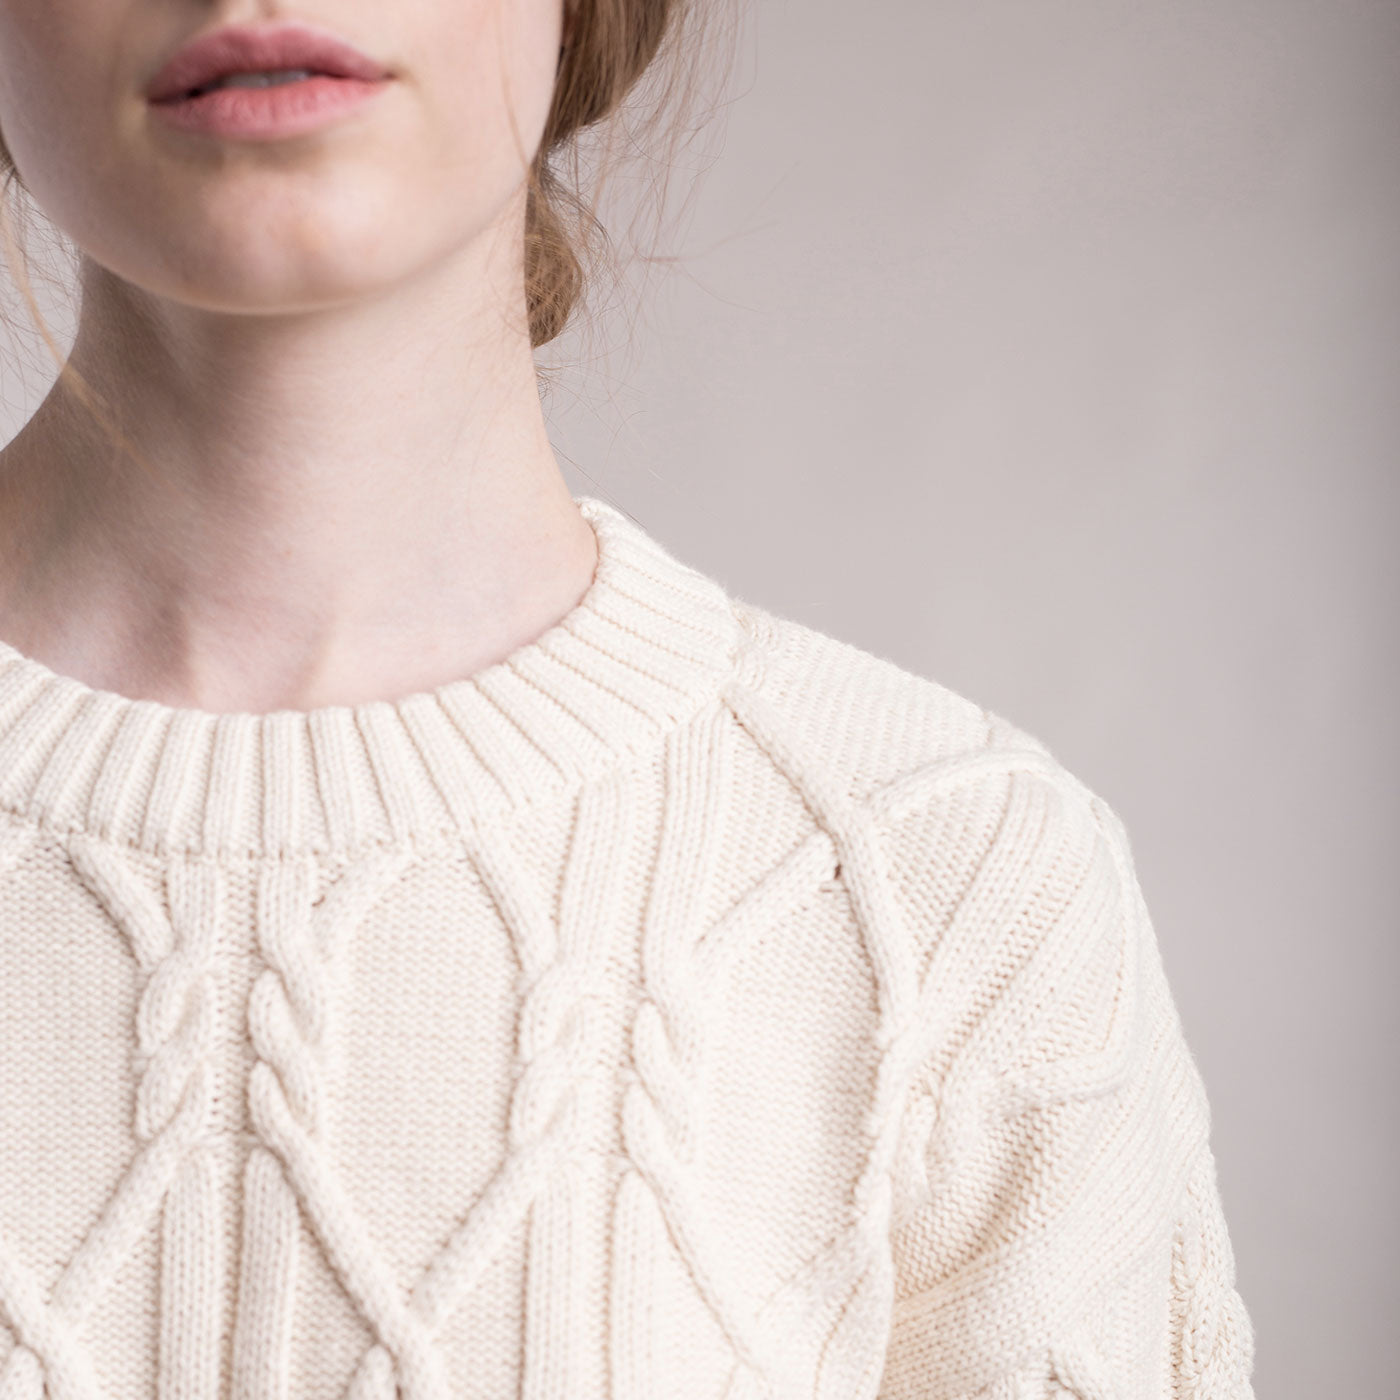 The model wears a cream sustainable organic cotton knitted aran pullover, detail low neck.